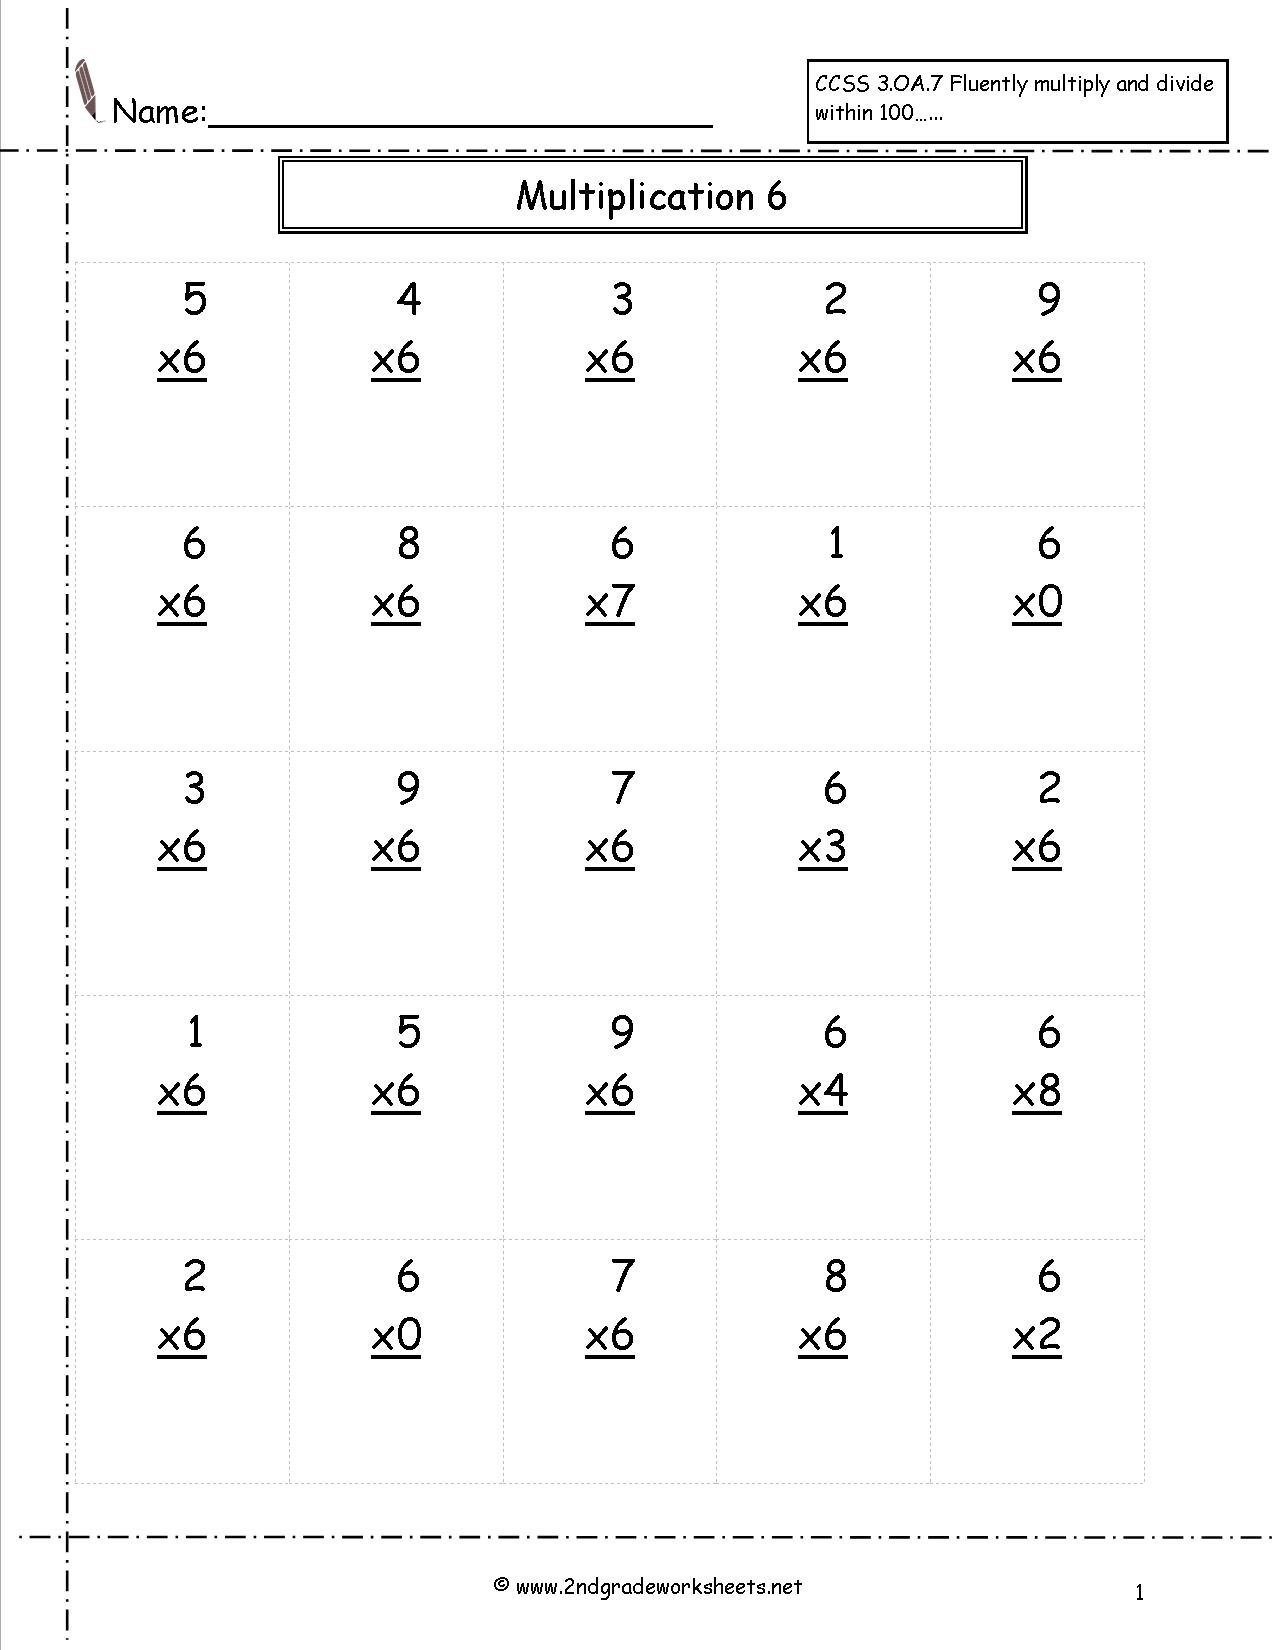 Multiplication Worksheets And Printouts for Multiplication Worksheets 6S And 7S